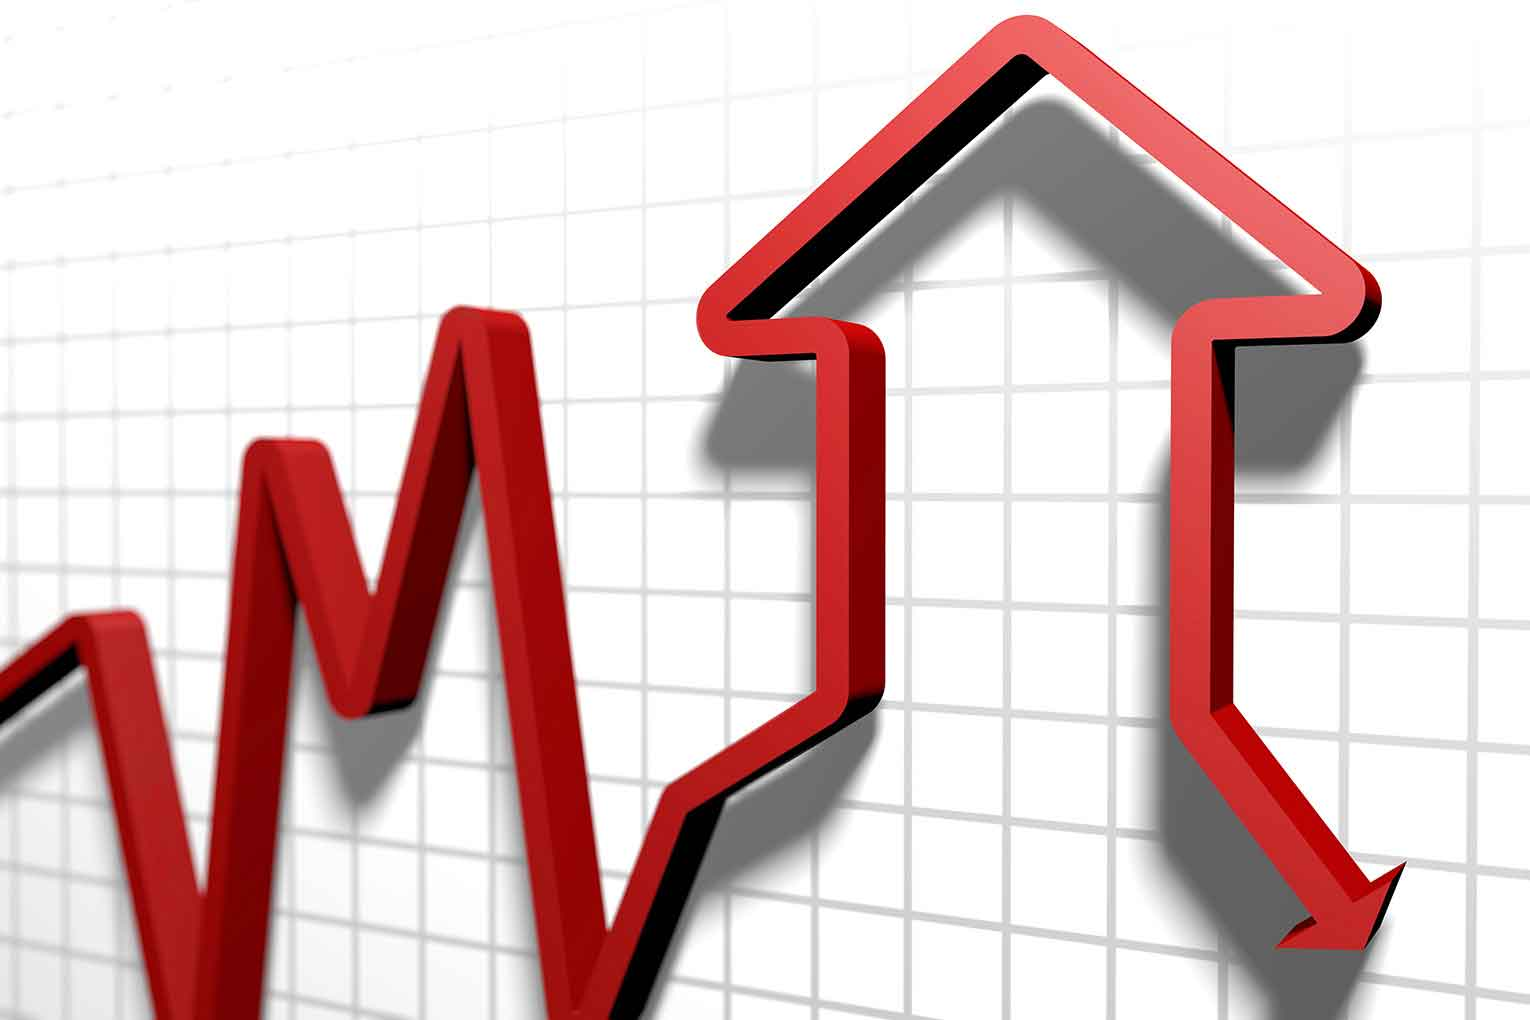 UK Finance reports August activity pick-up